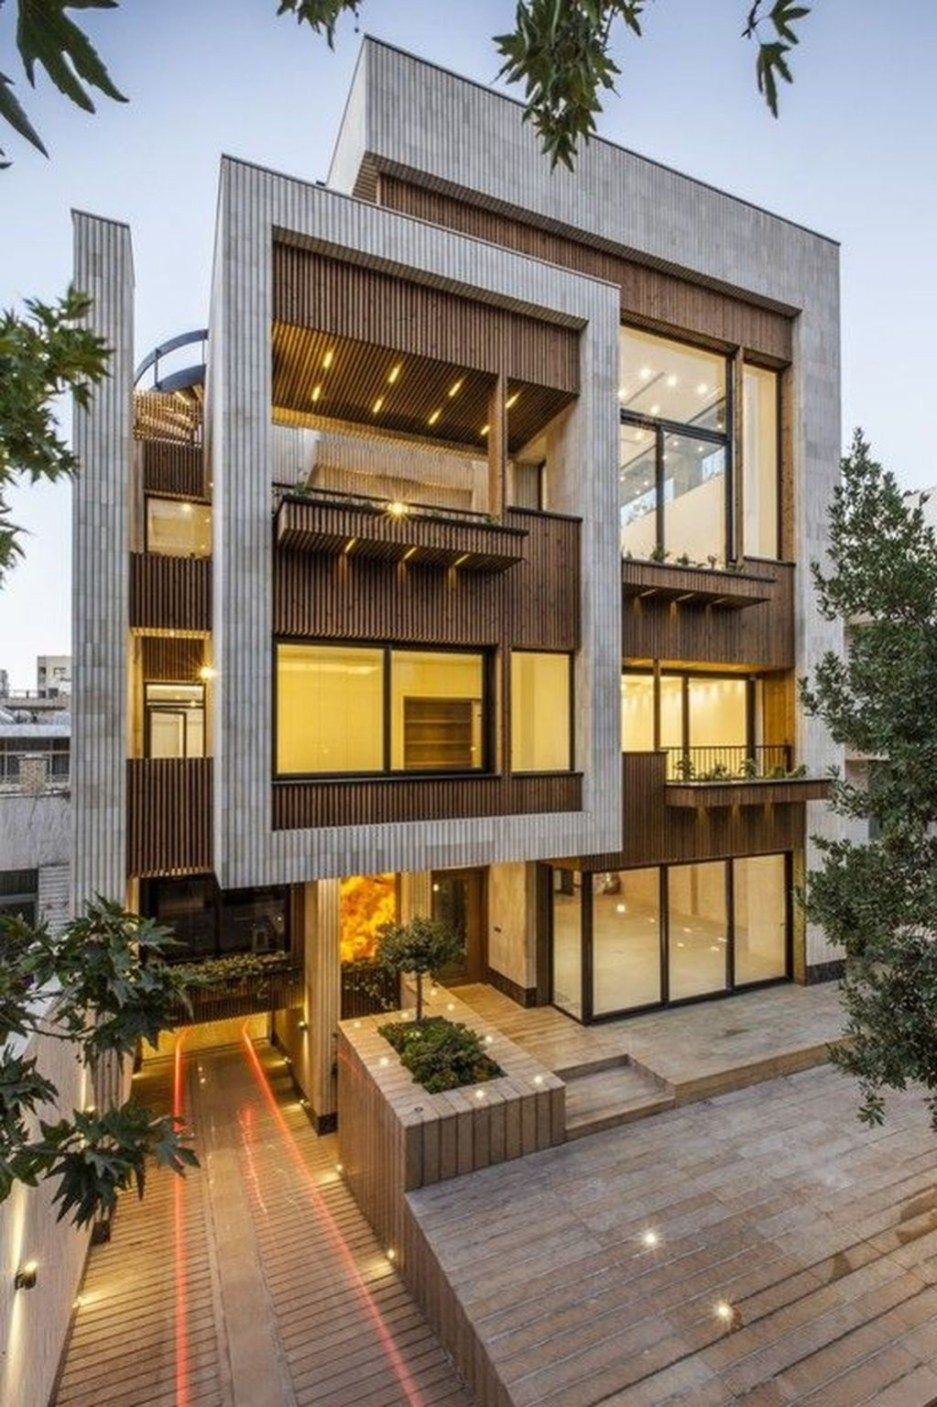 Fantastic architecture building ideas to inspire you also housing rh pinterest